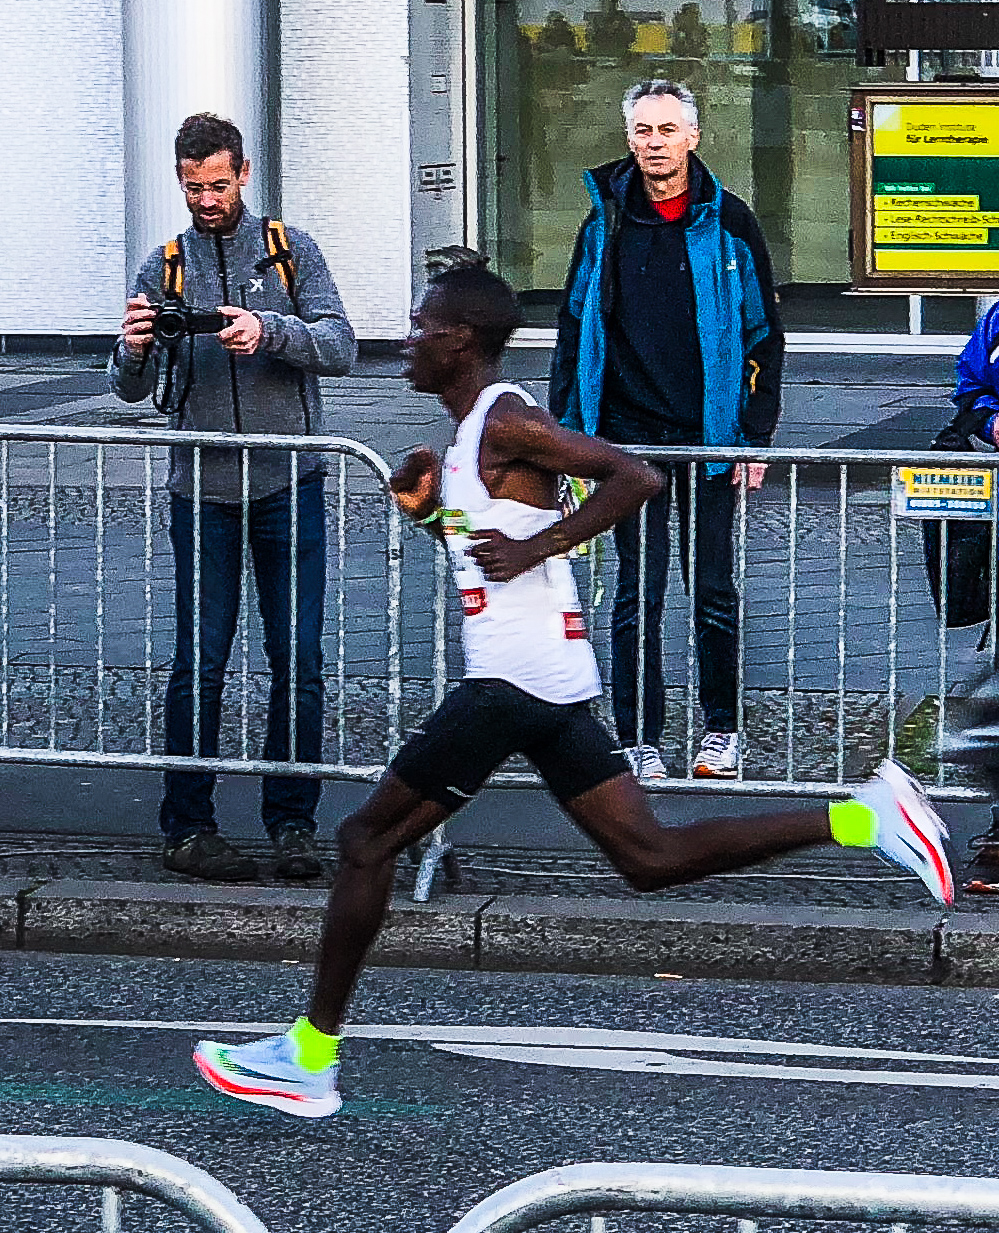 Erick Kiptanui, the winning runner.